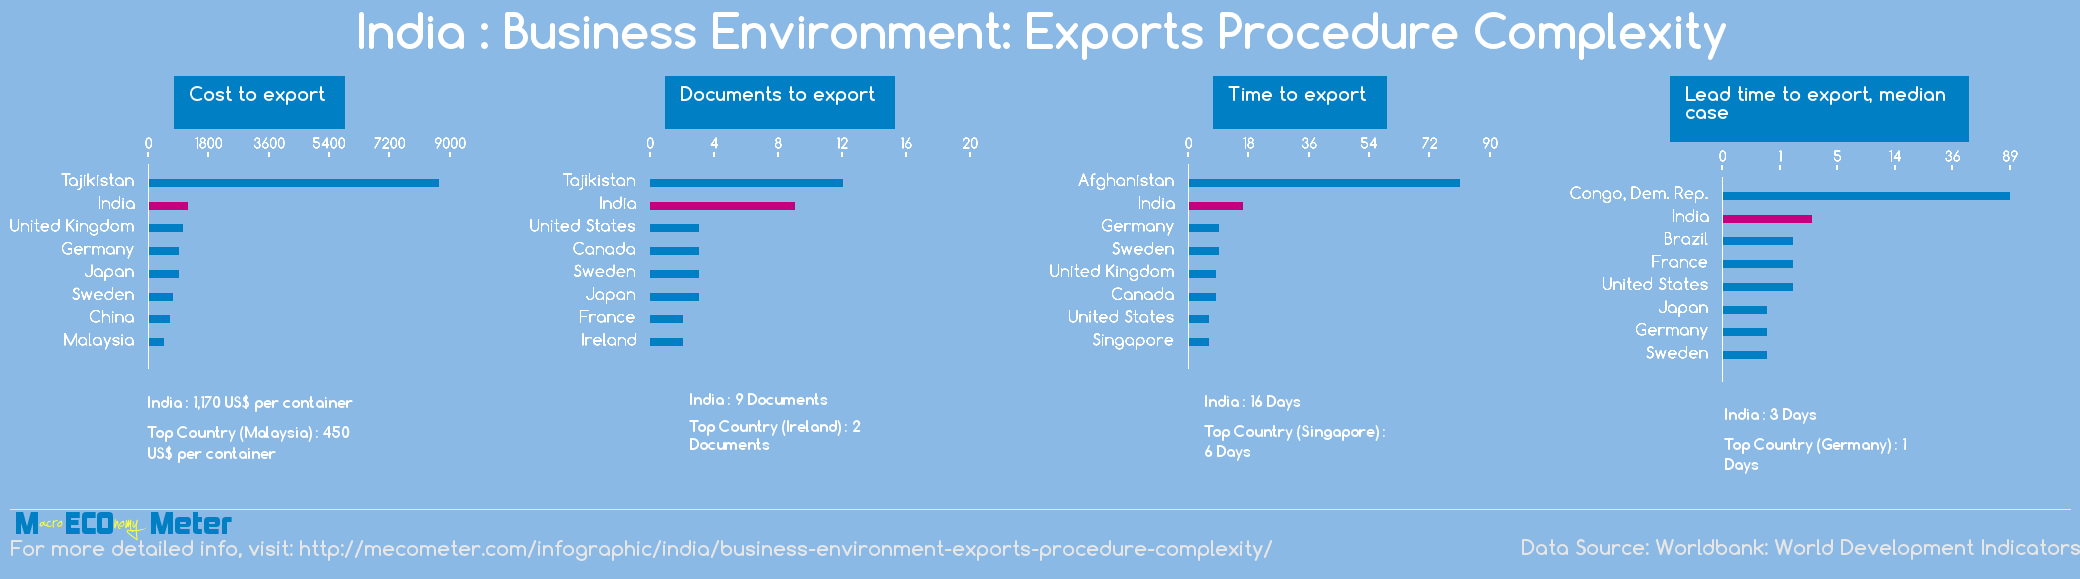 India : Business Environment: Exports Procedure Complexity